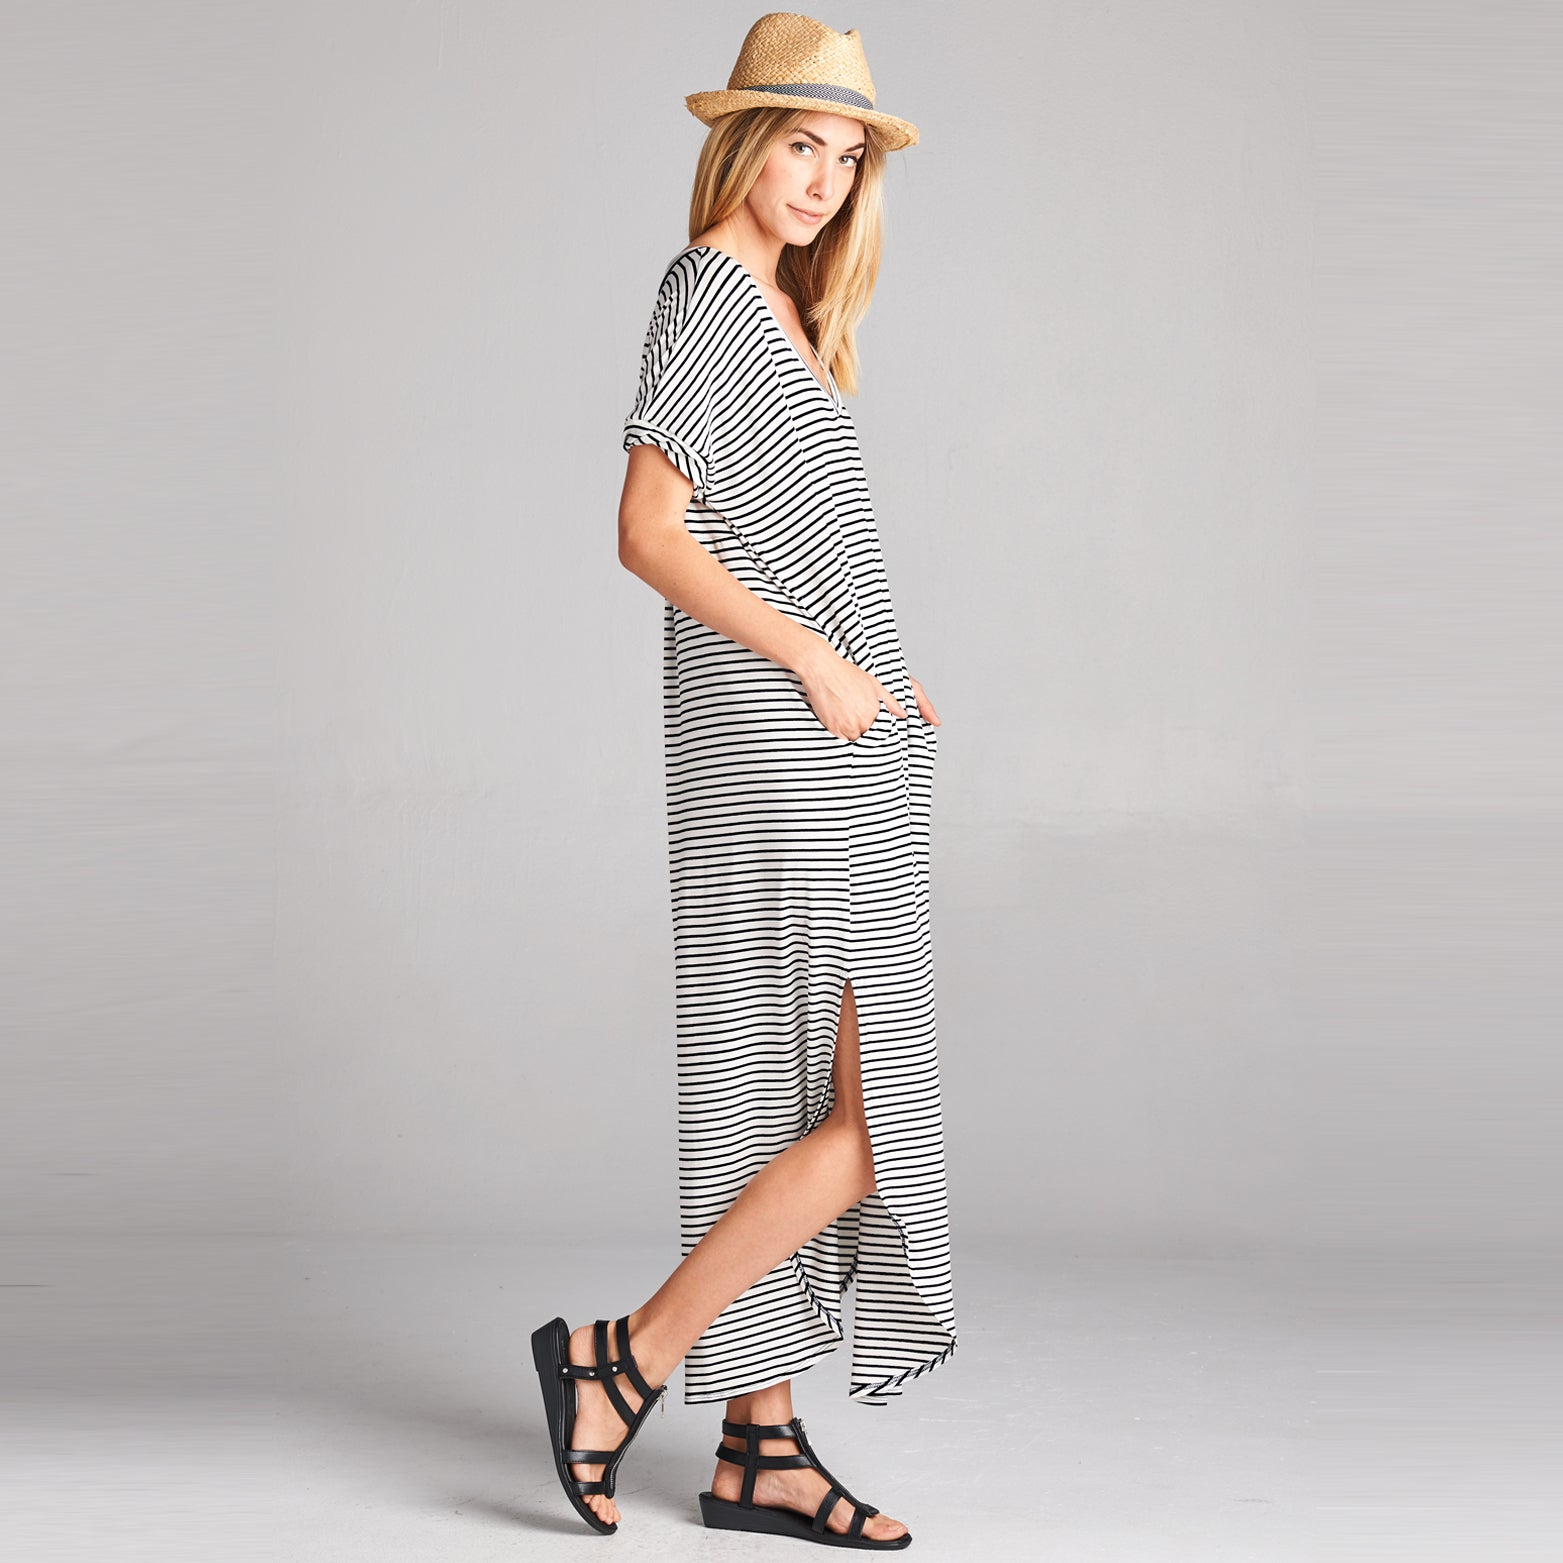 Assorted Striped Print Maxi Dress - Love, Kuza